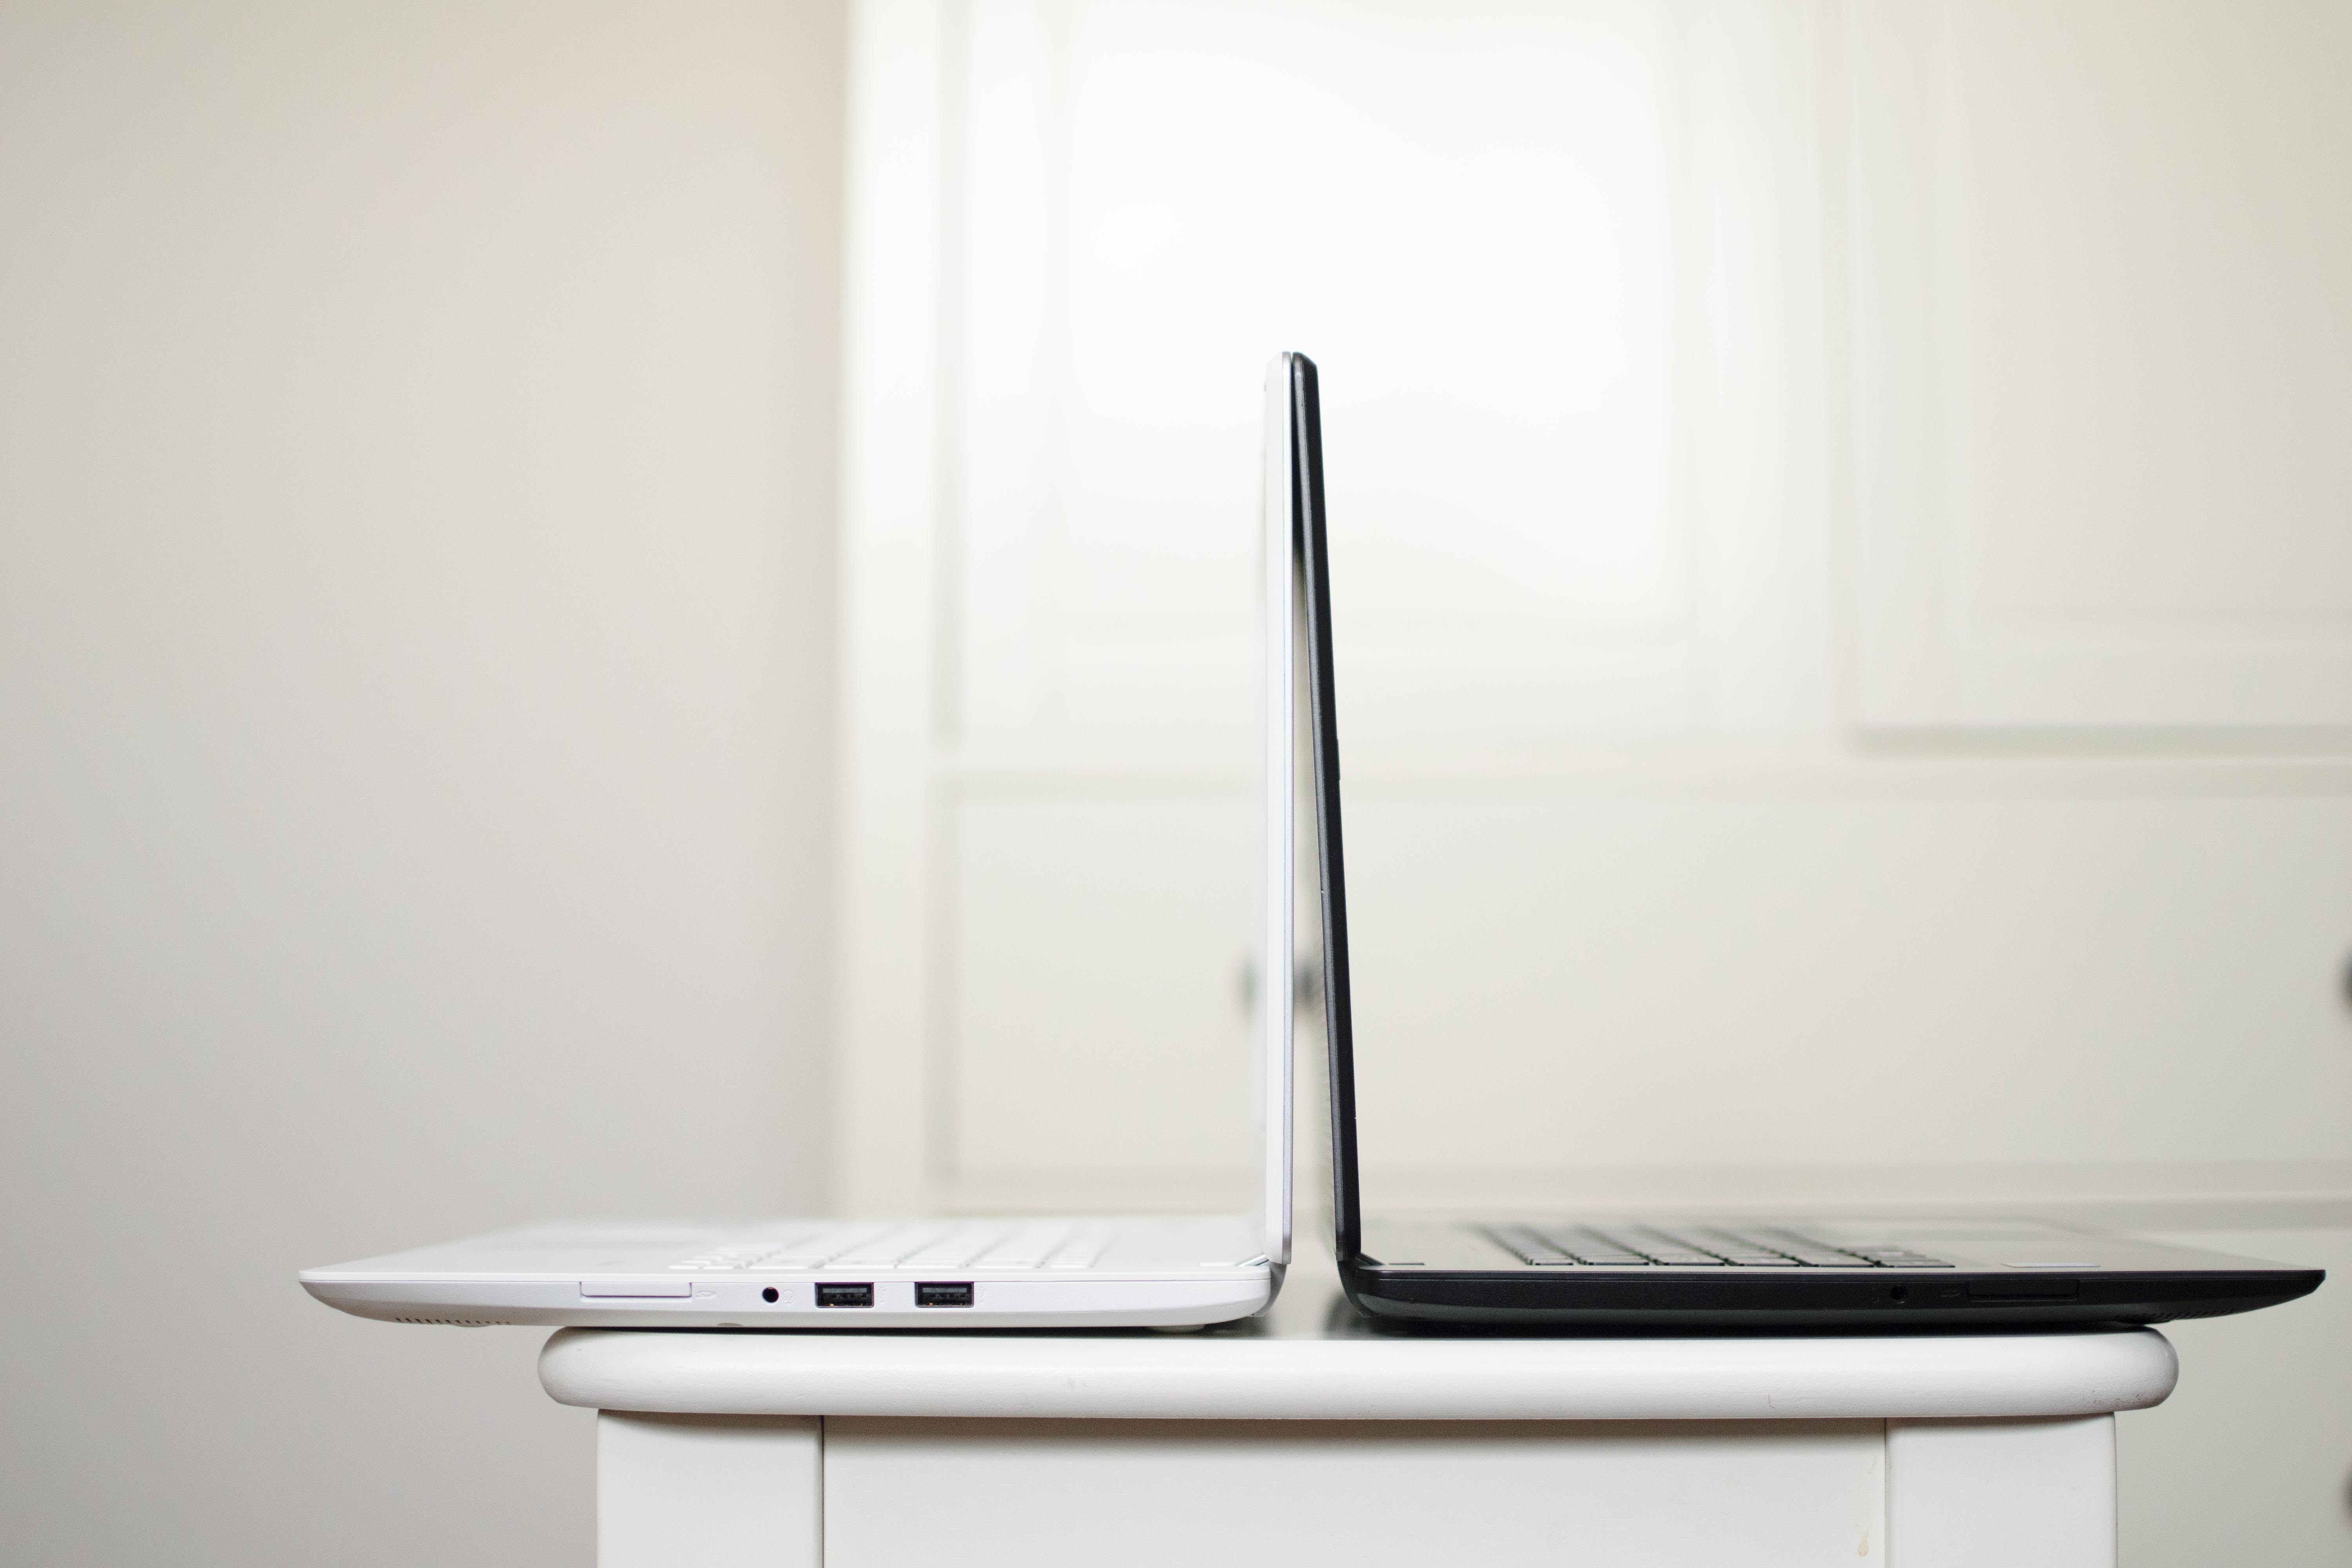 black and white laptop on table back to back